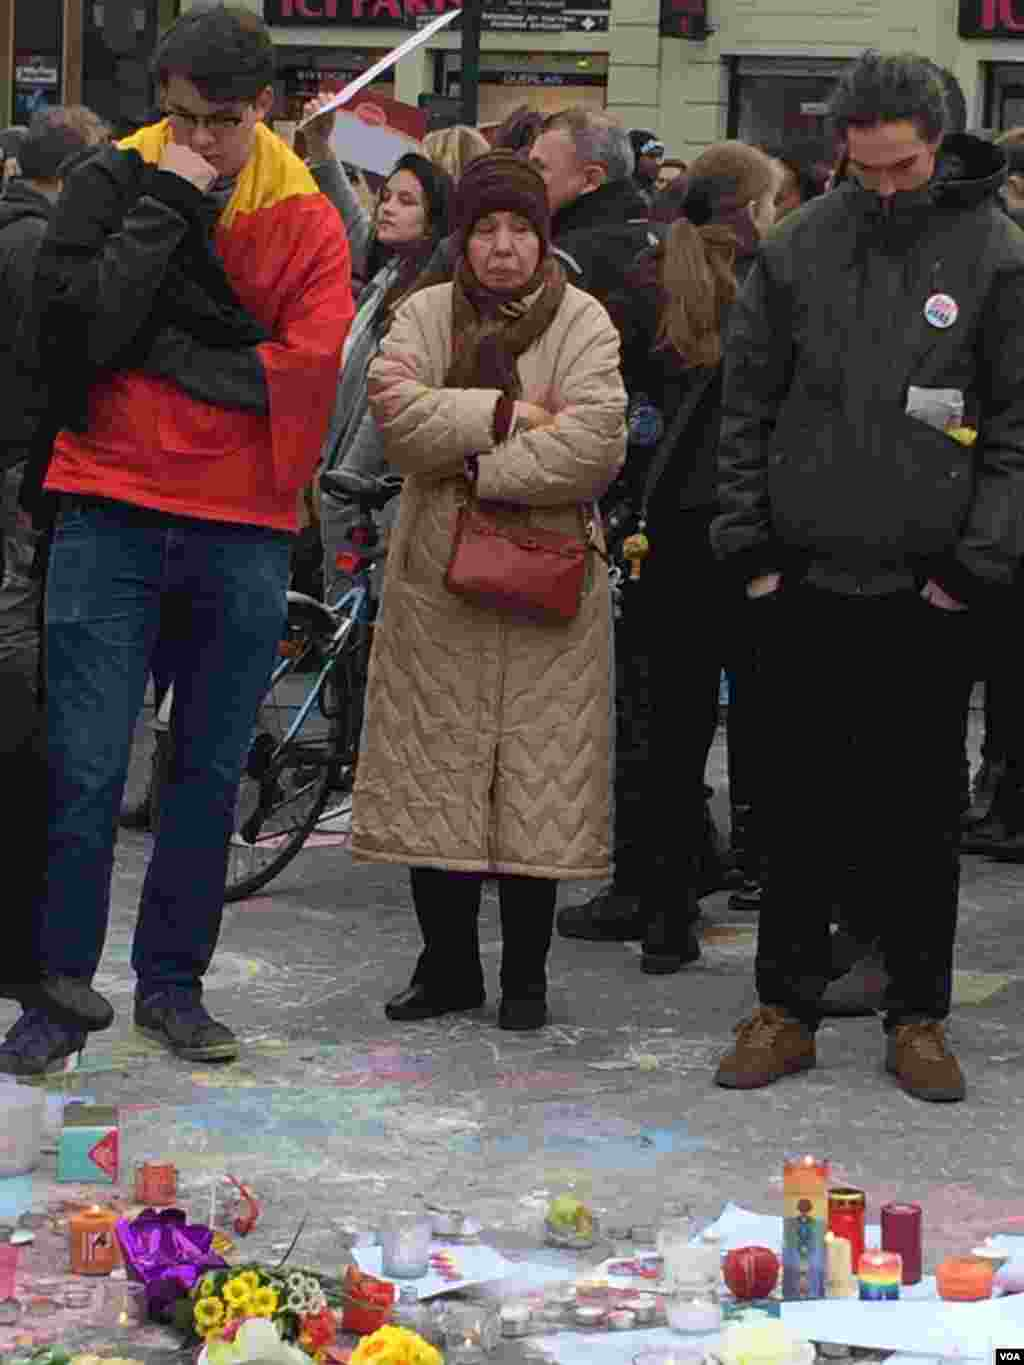 Belgium's national moment of silence at noon turned into an all-day vigil in Brussels, Belgium, on 23 March, 2016. (H. Murdock / VOA)